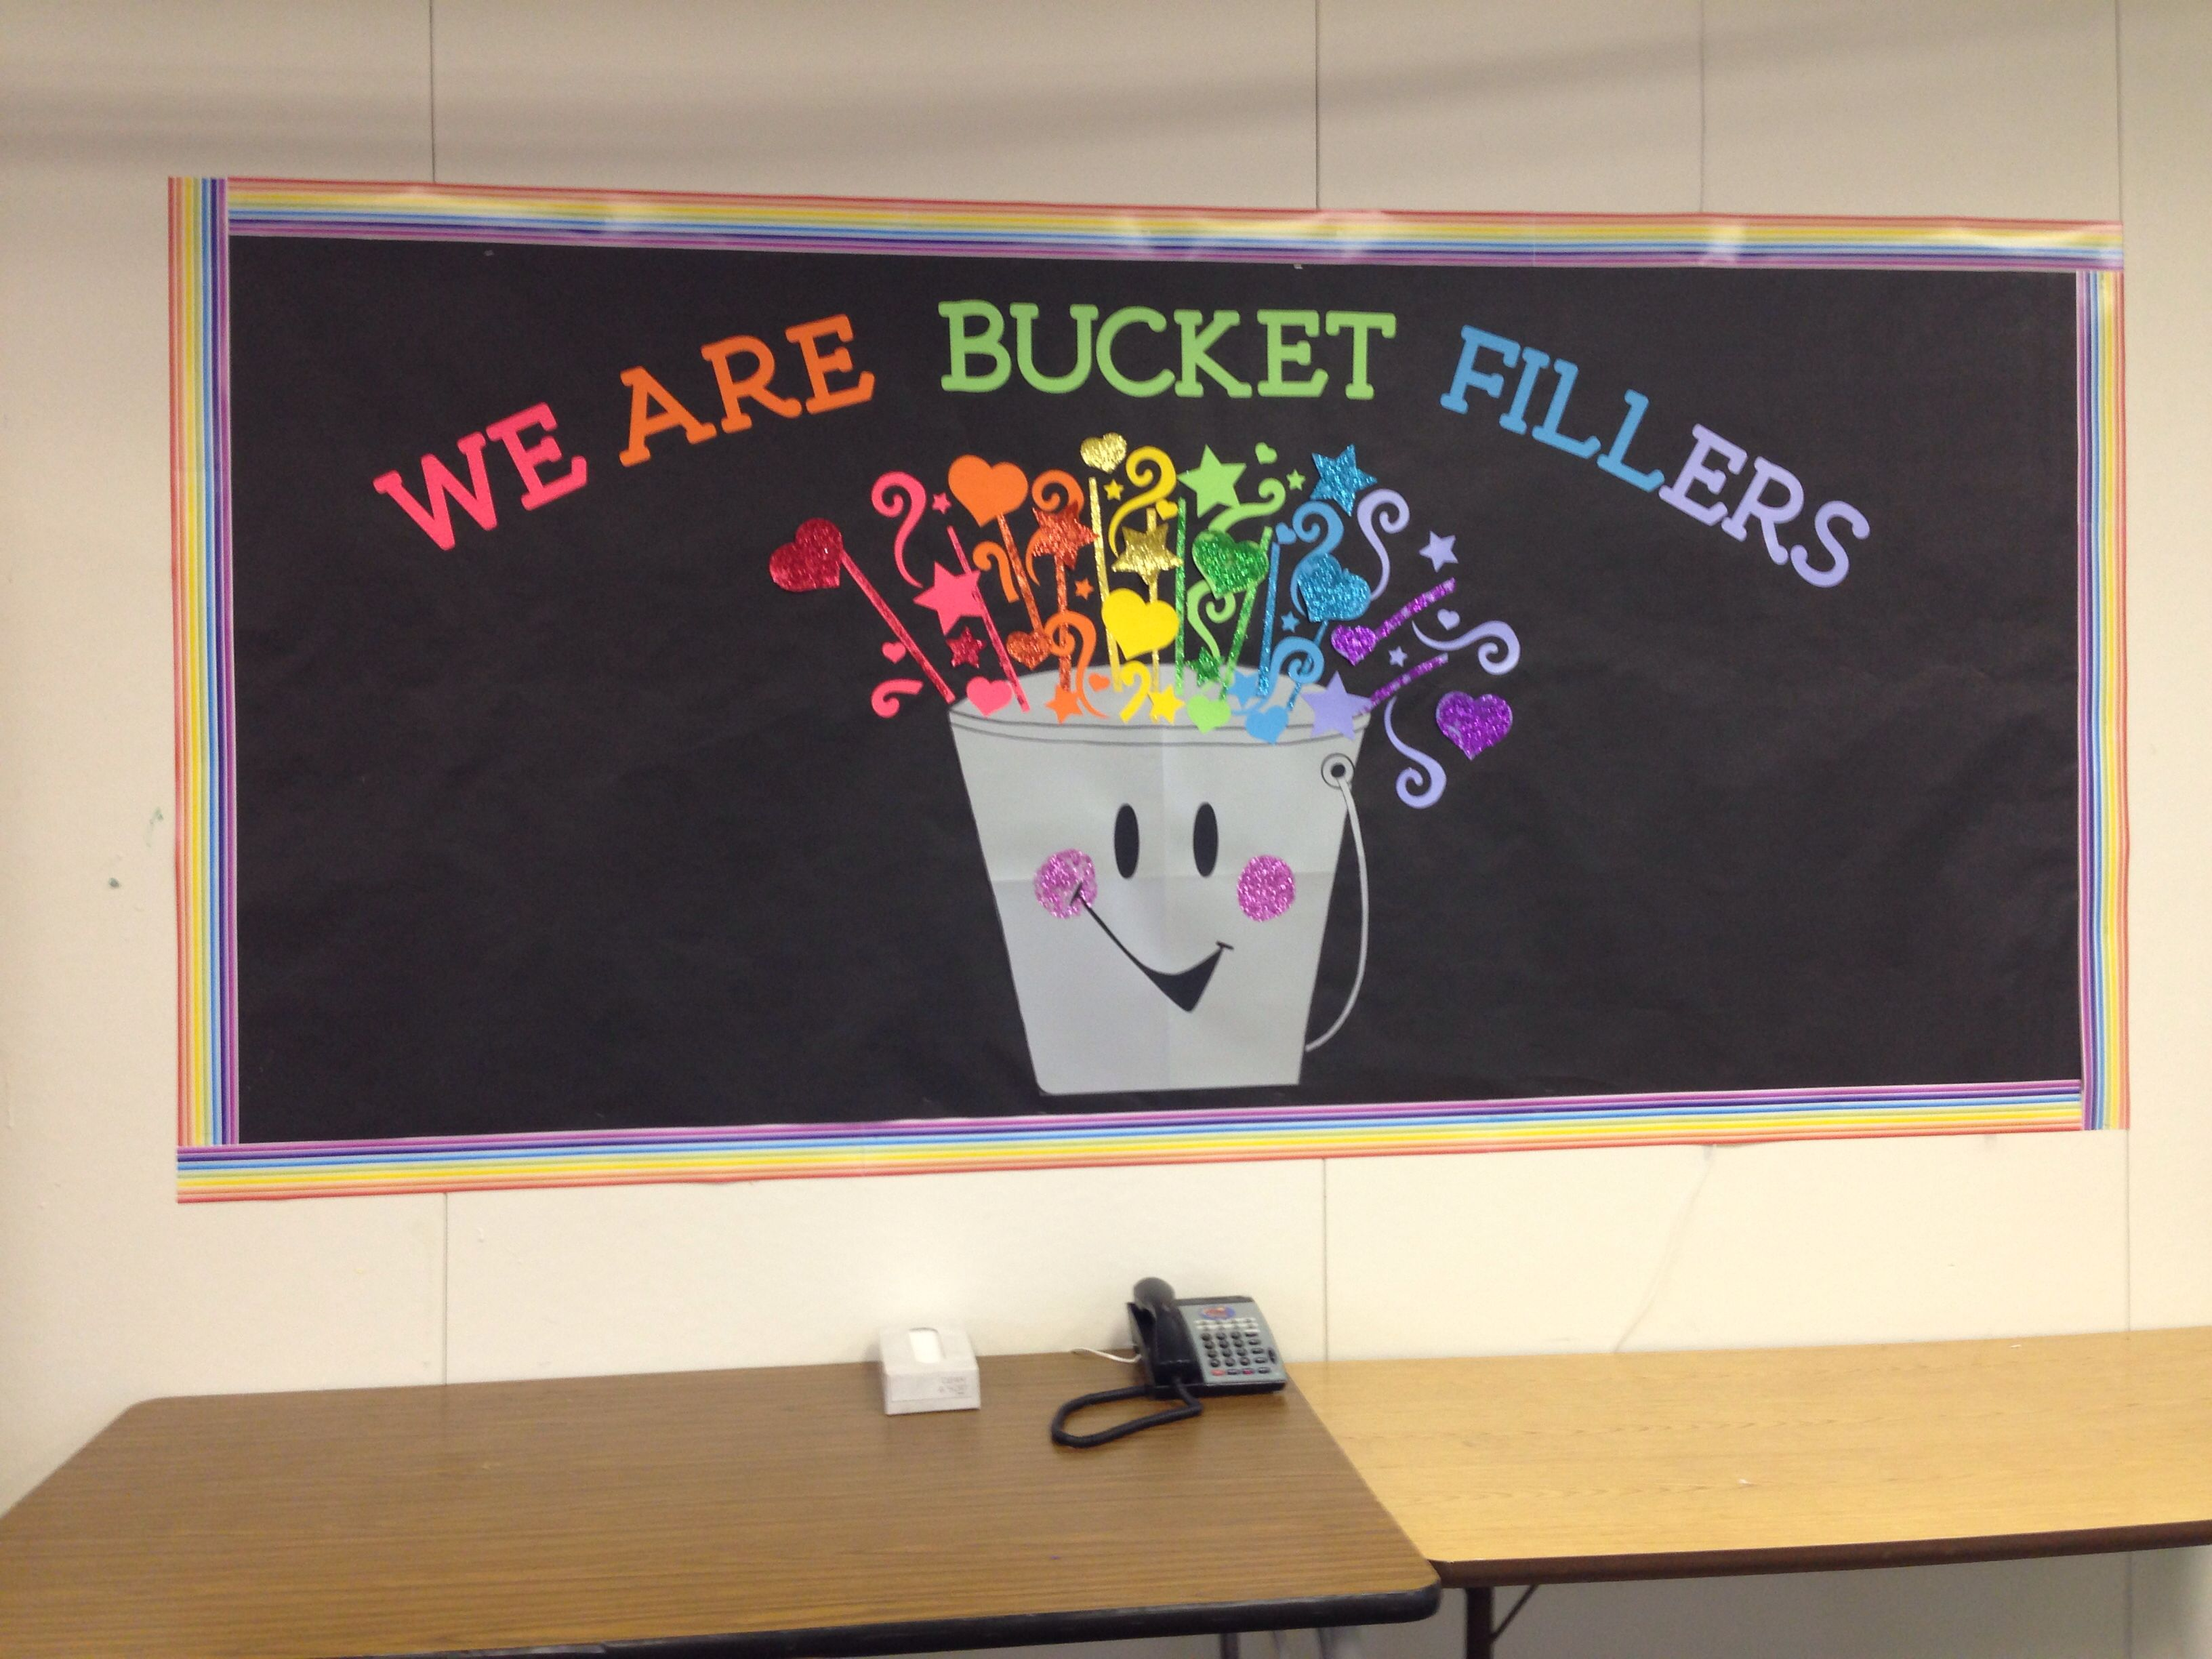 Have You Filled A Bucket Today Themed Wall Deco Zayra Linda And Robert